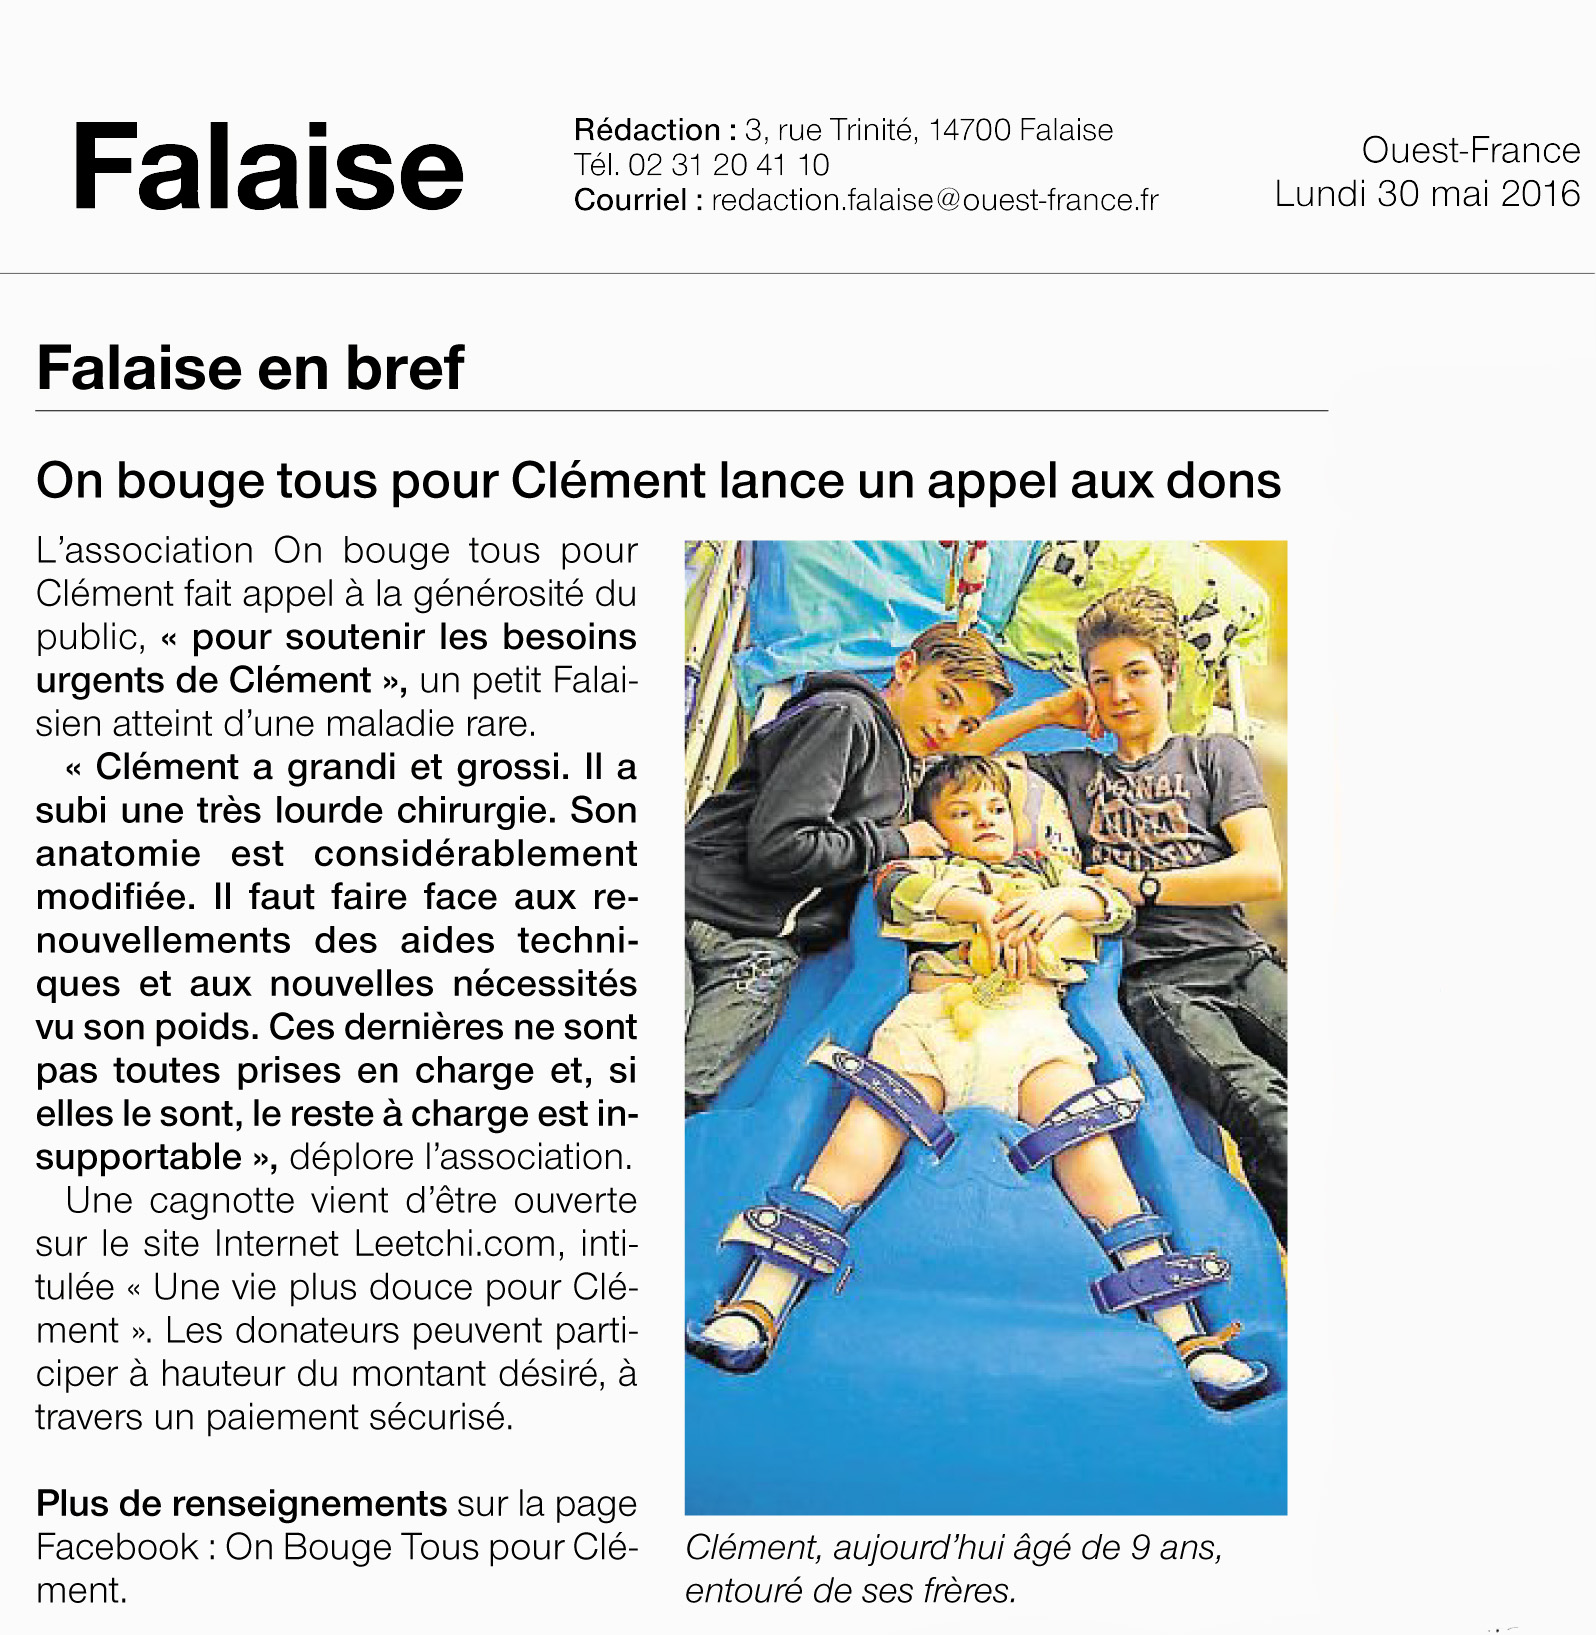 ouest france cagnotte 30 mai 2016